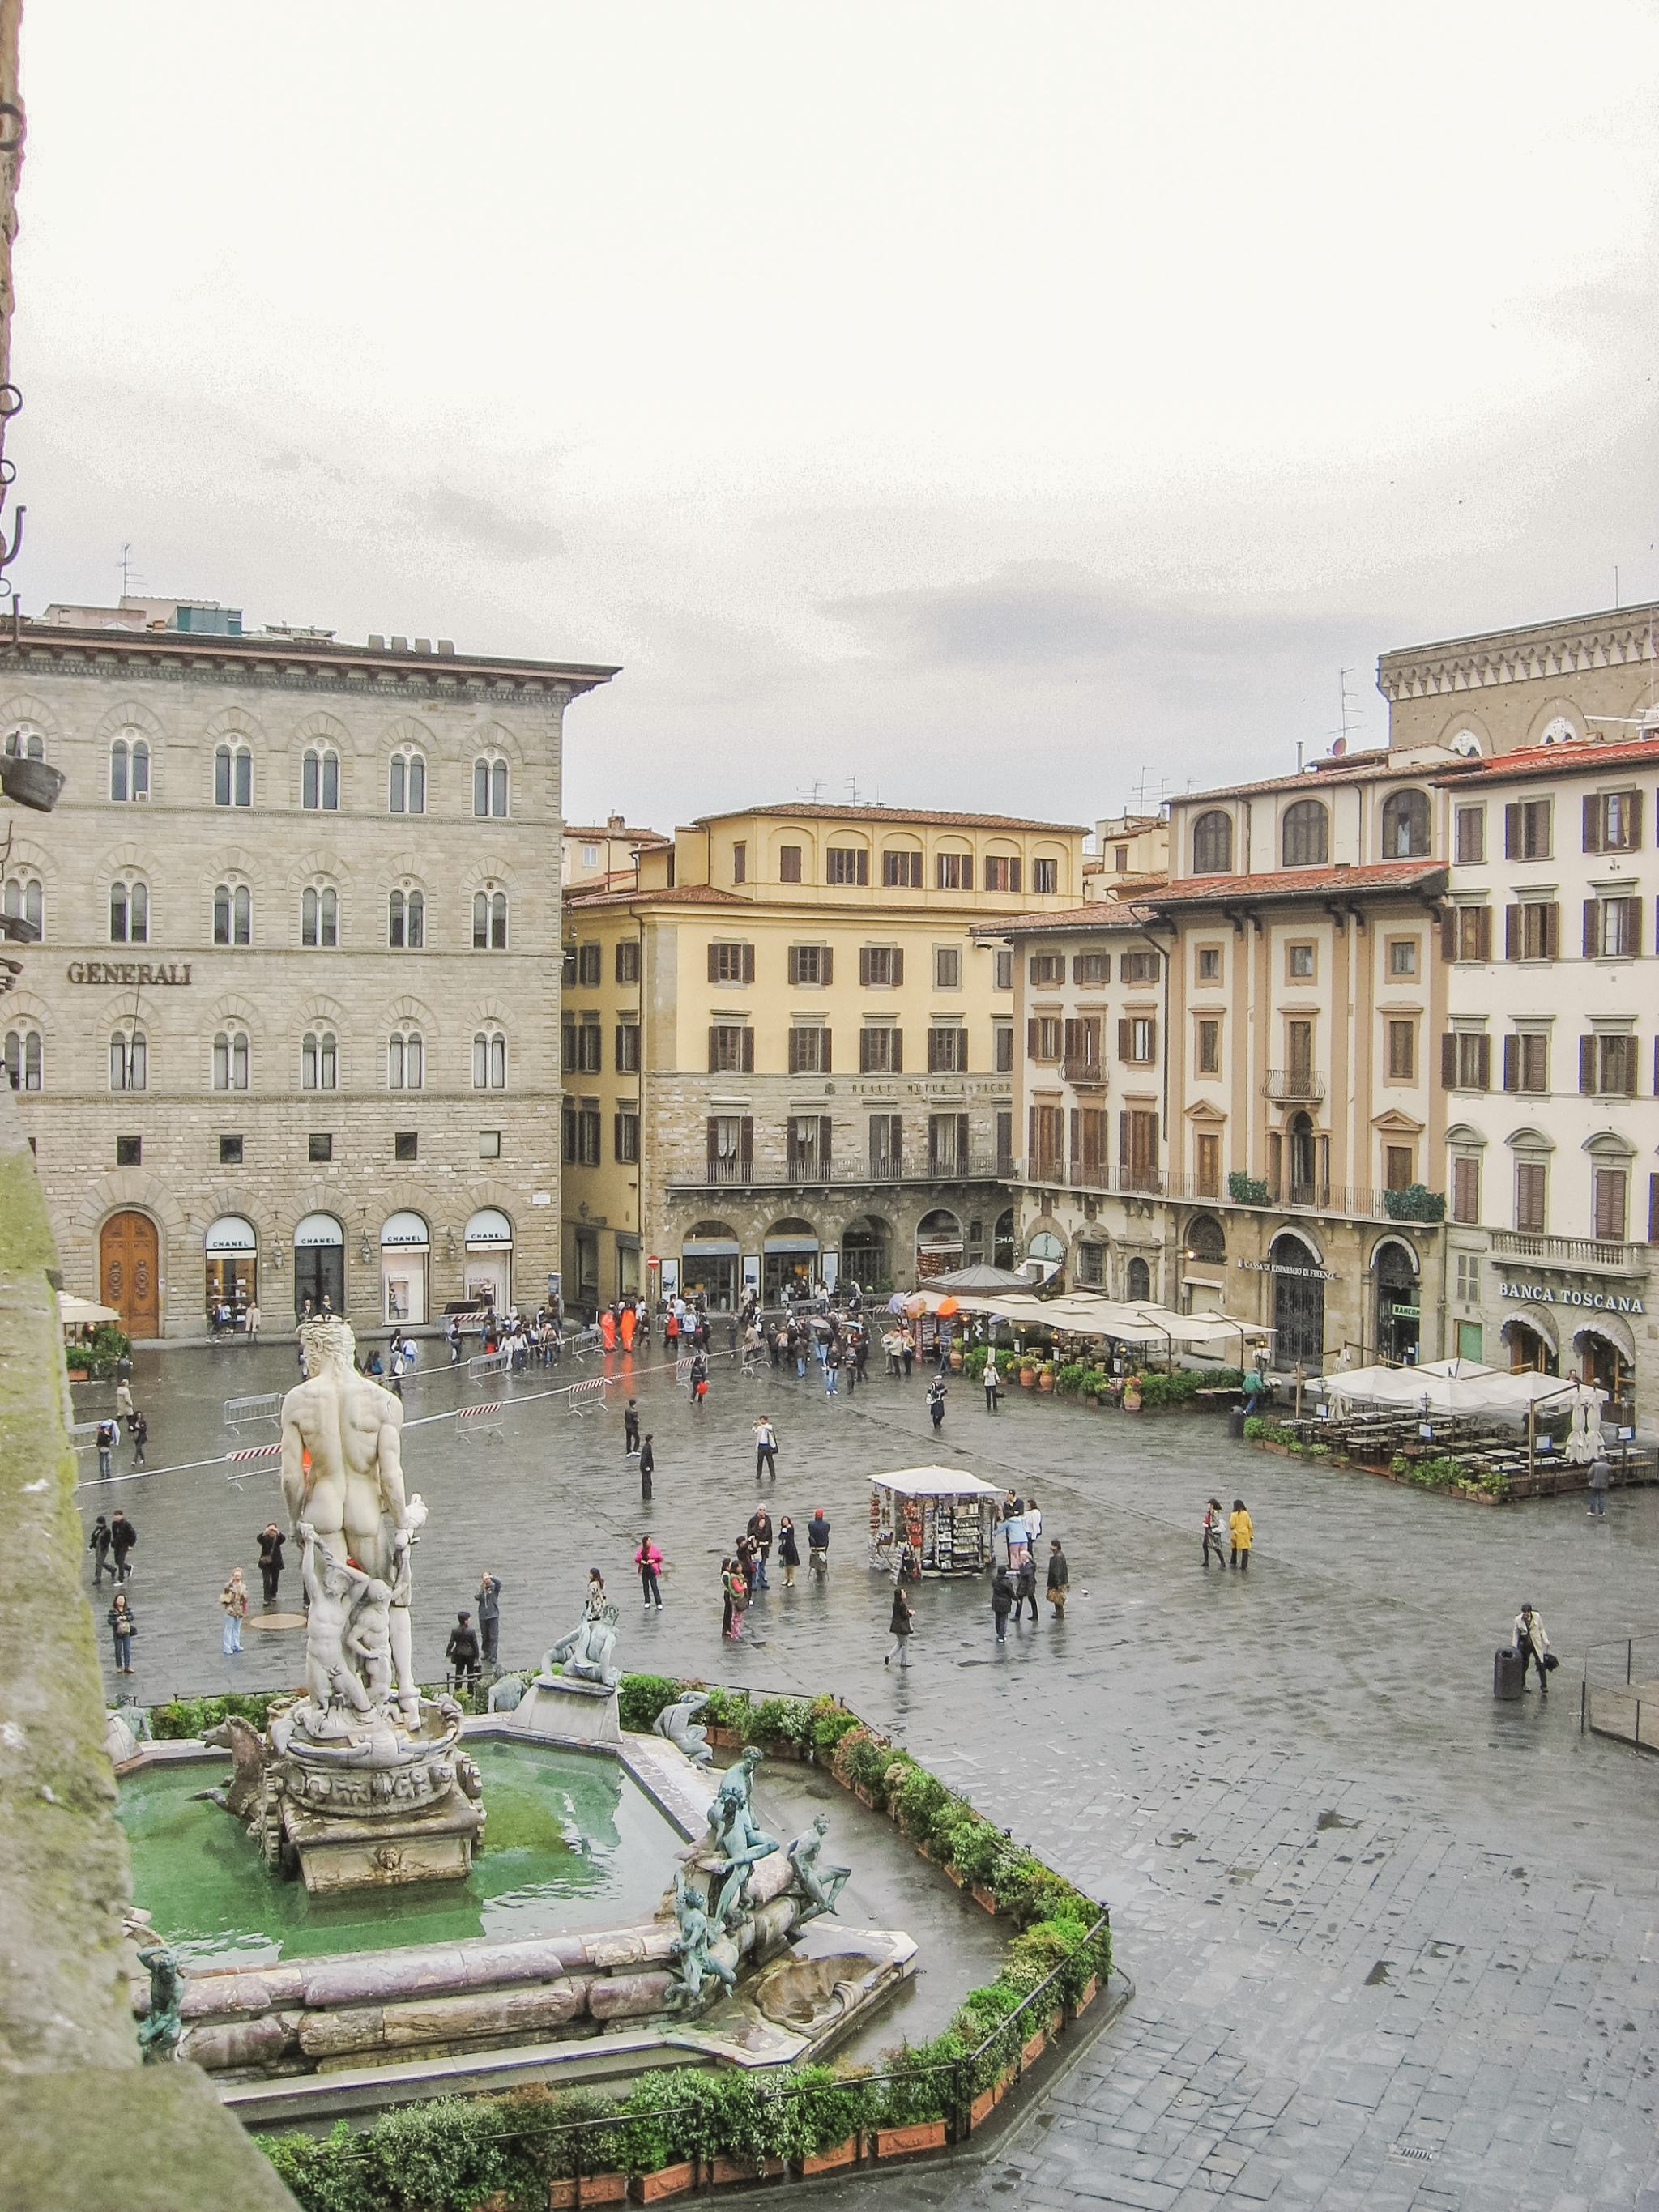 Bijuleni - 10 things to do in Florence. Italy in 2 days